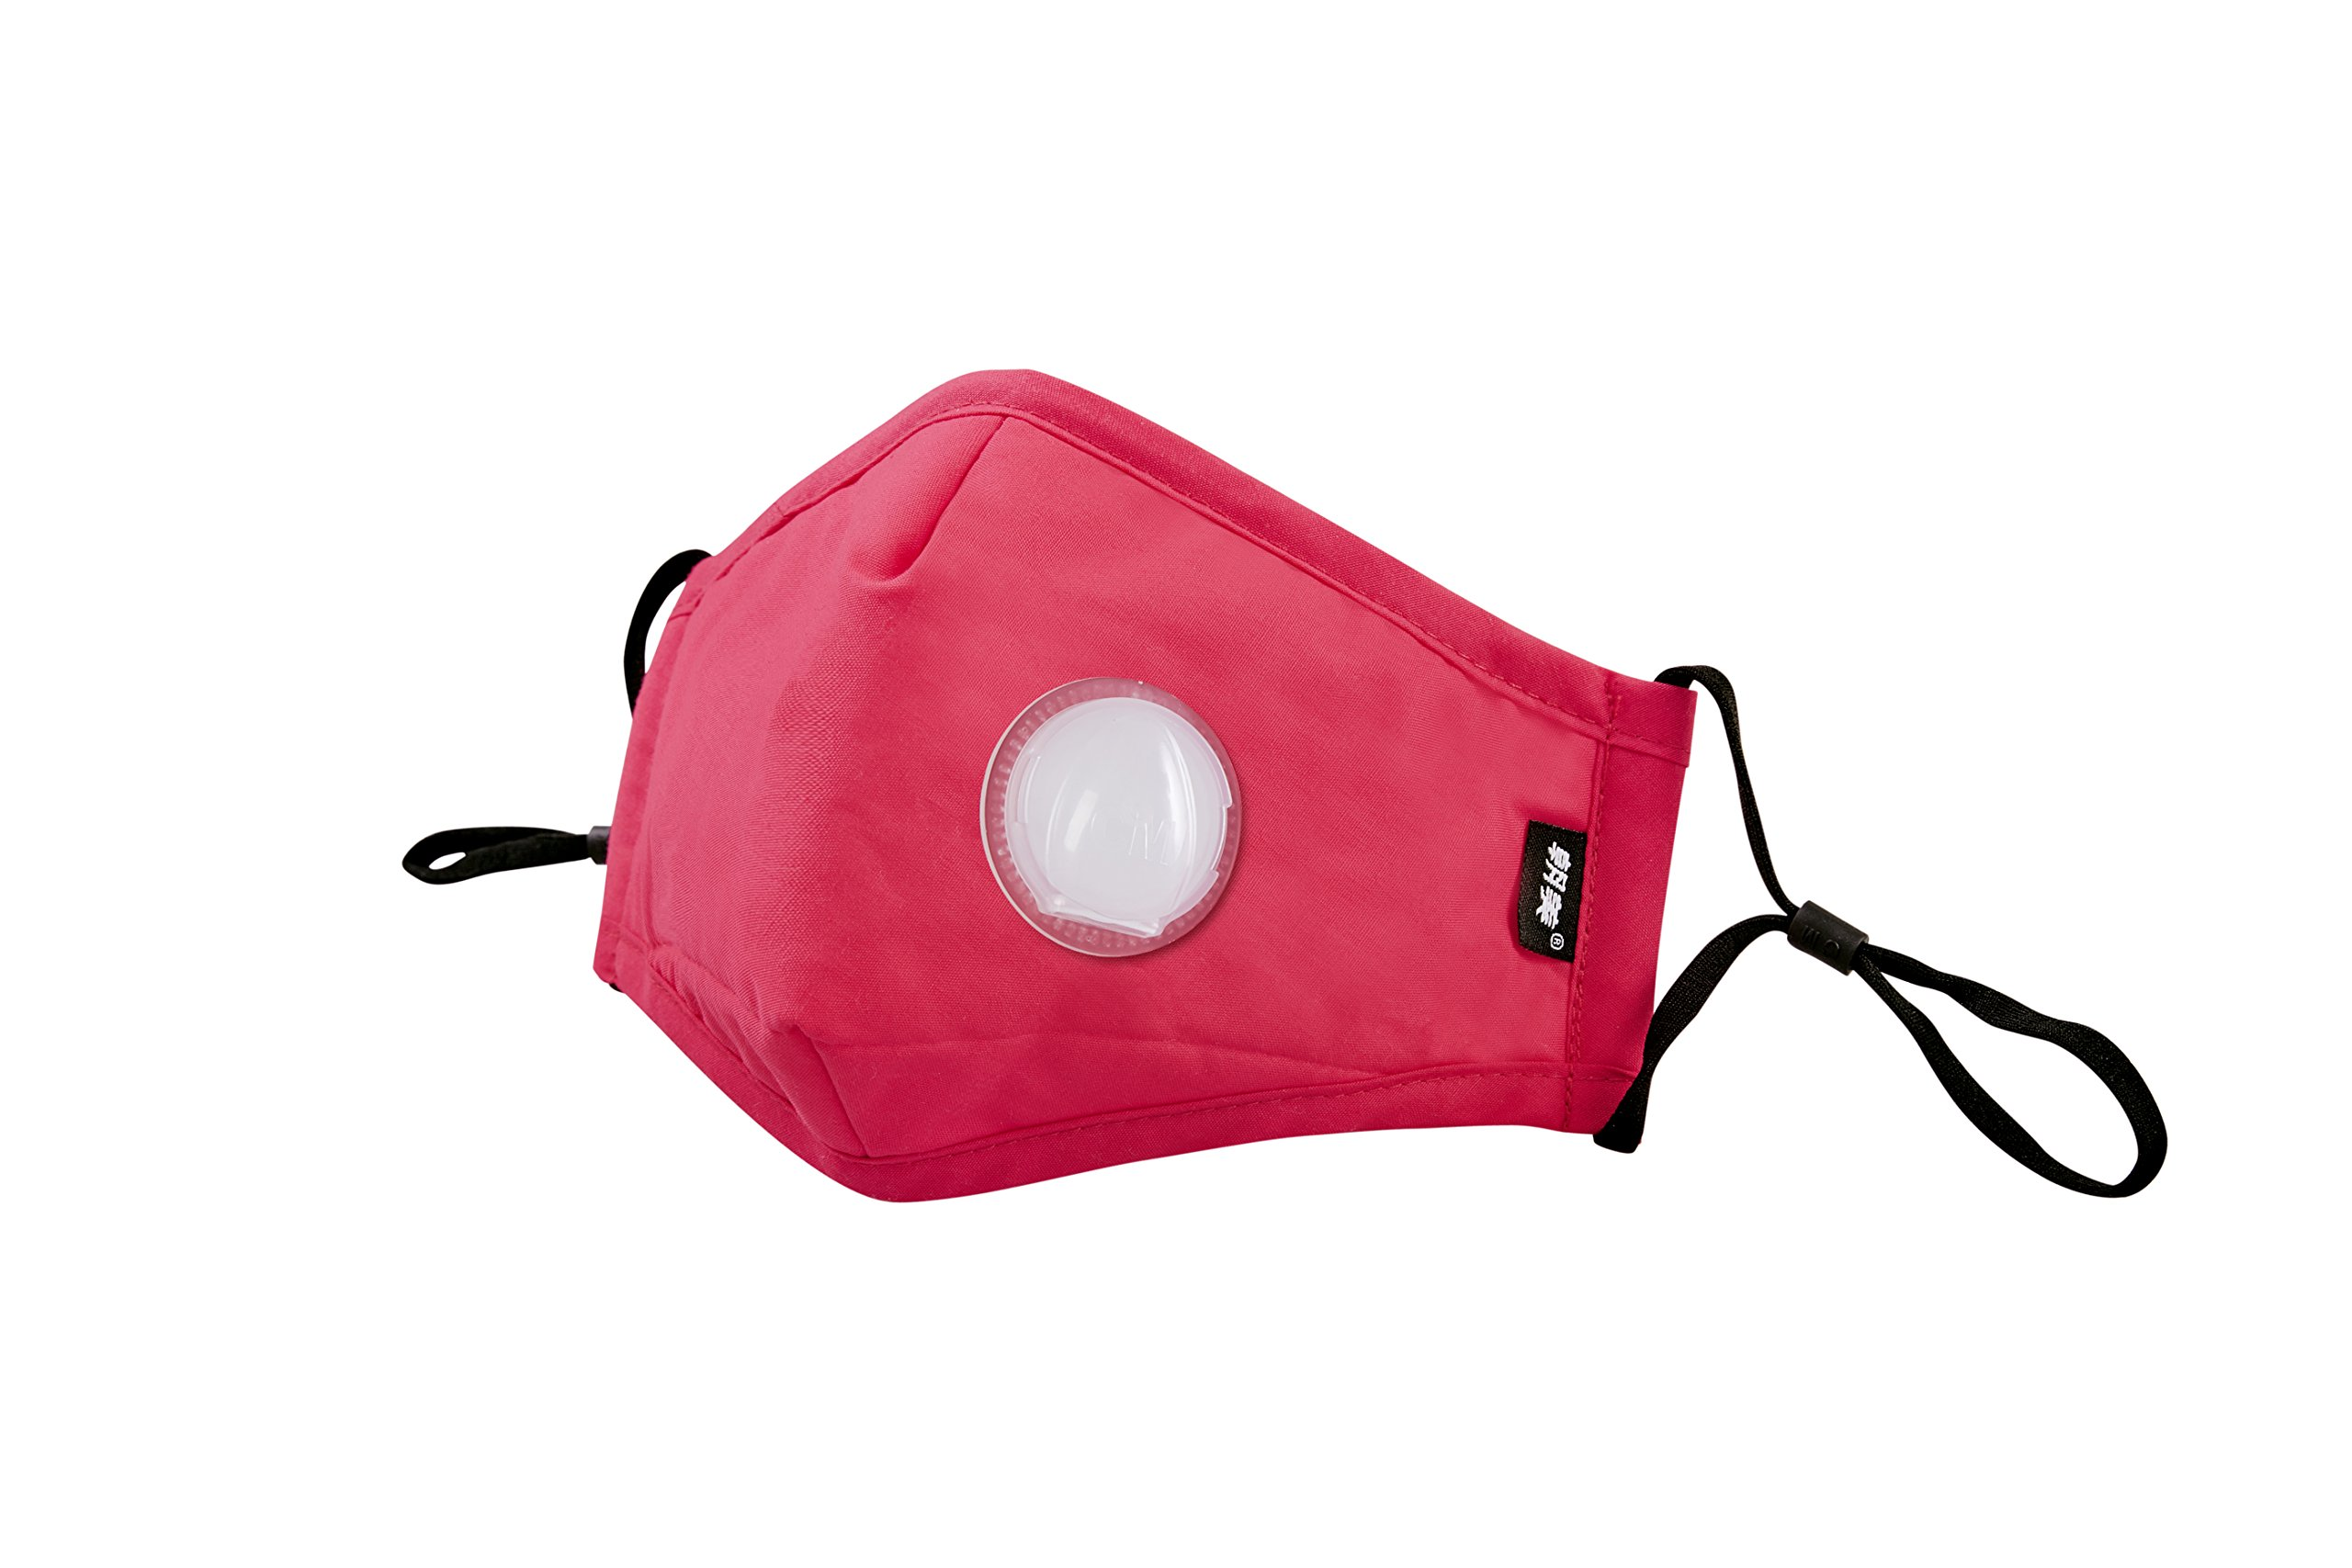 Dust mask,Non-toxic mask,Breathable mask(model:Y-2 Breather valve) (rose red)